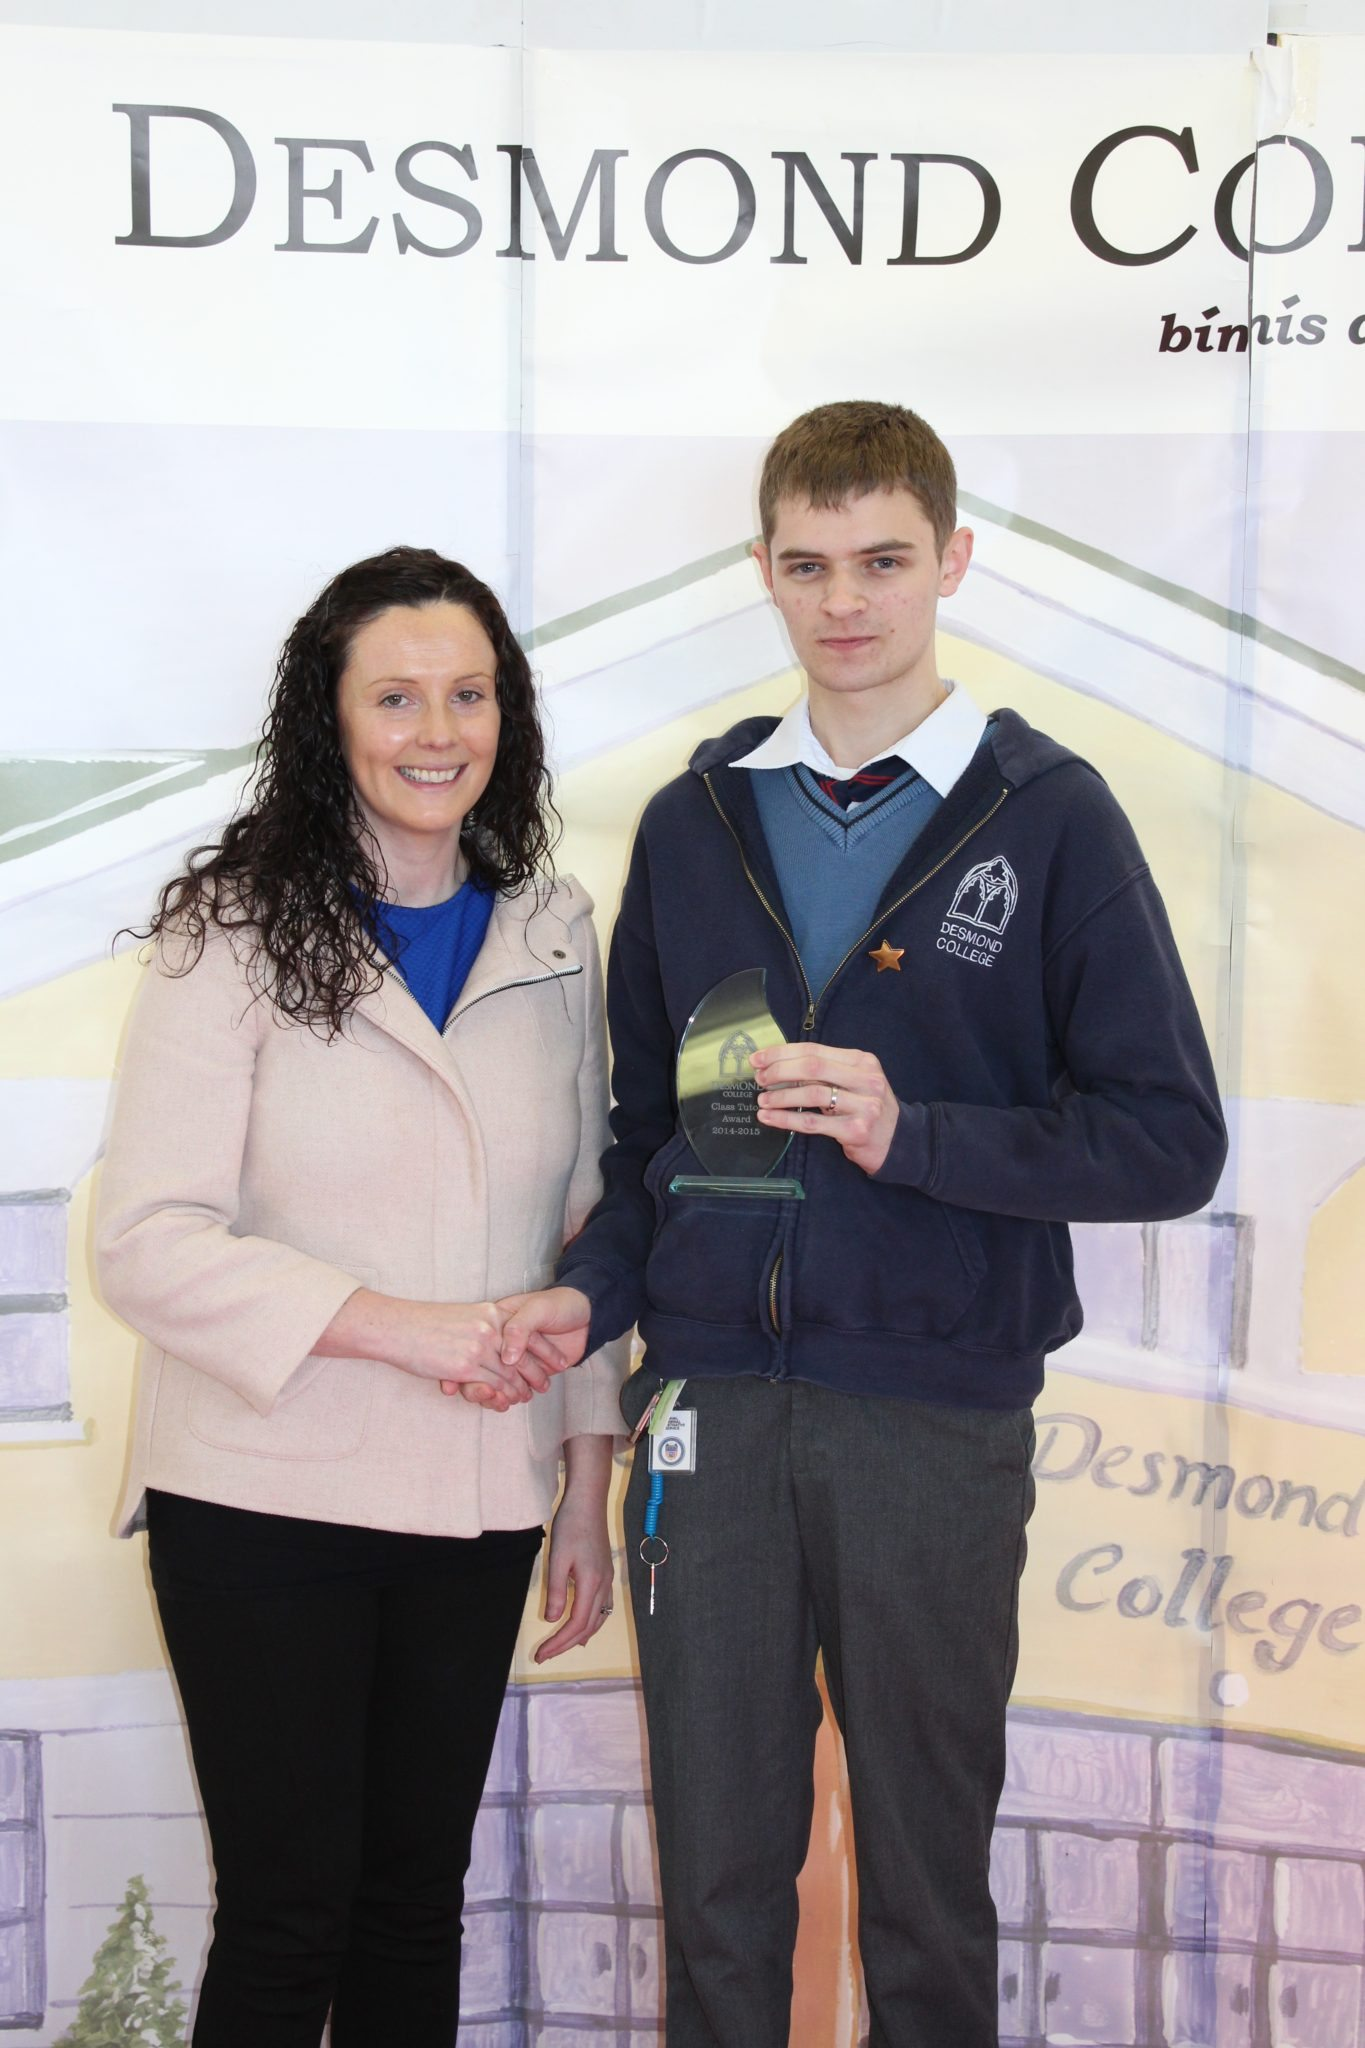 Desmond College Student Awards: May 2015: TUTOR AWARDS 5th Year : Ms Broderick with Sean Dillon